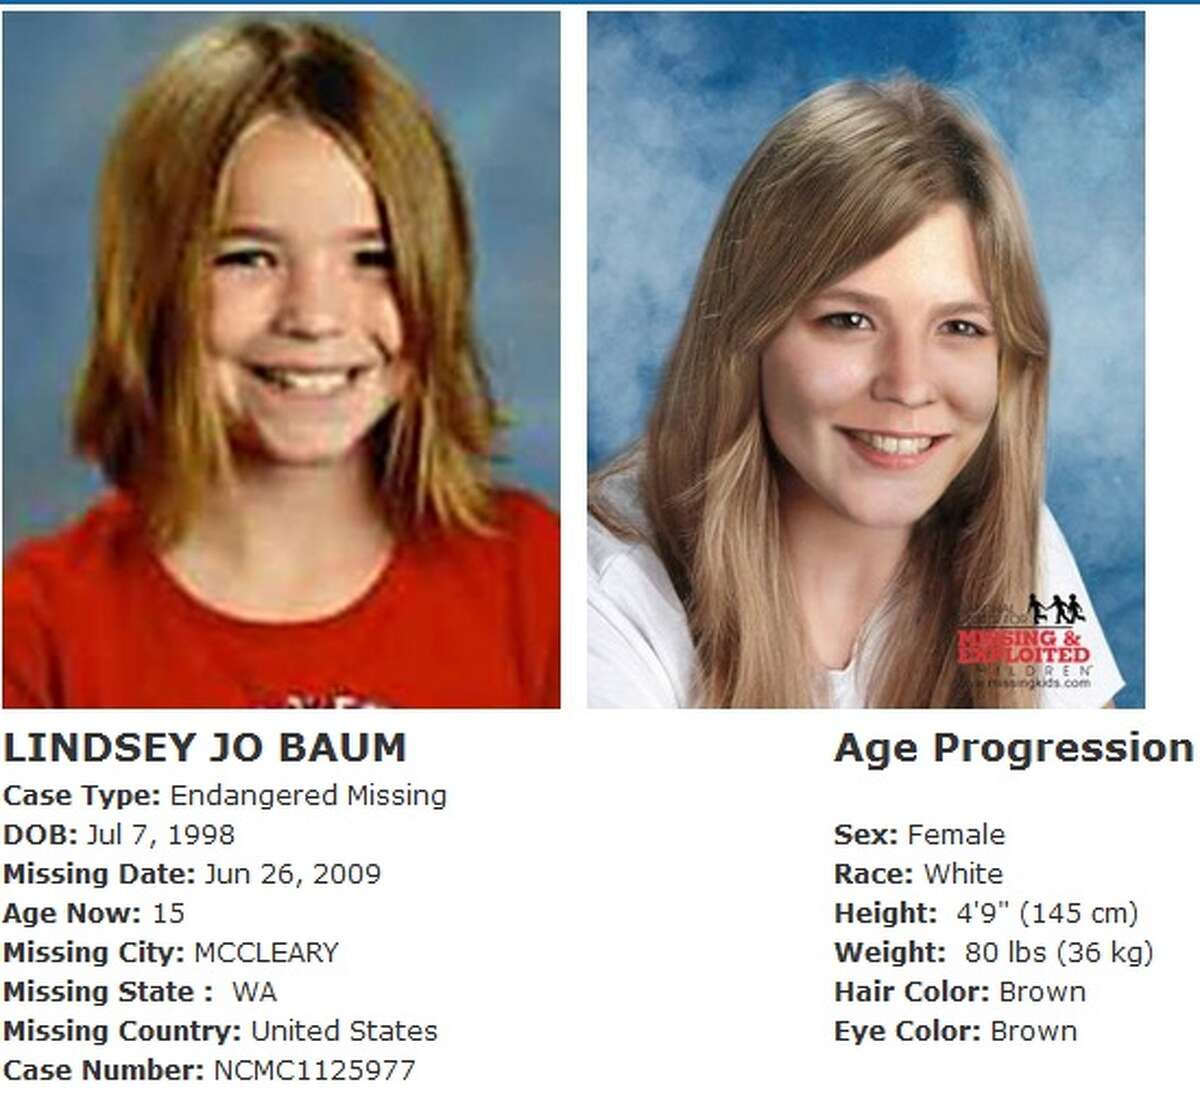 More than half of child abductions take place in the child's neighborhood, according to the FBI. The Lindsey Baum case is an example.Baum disappeared from her neighborhood in McCleary in 2009 while walking home from a friend's house. According to the Grays Harbor Sheriff's Office,